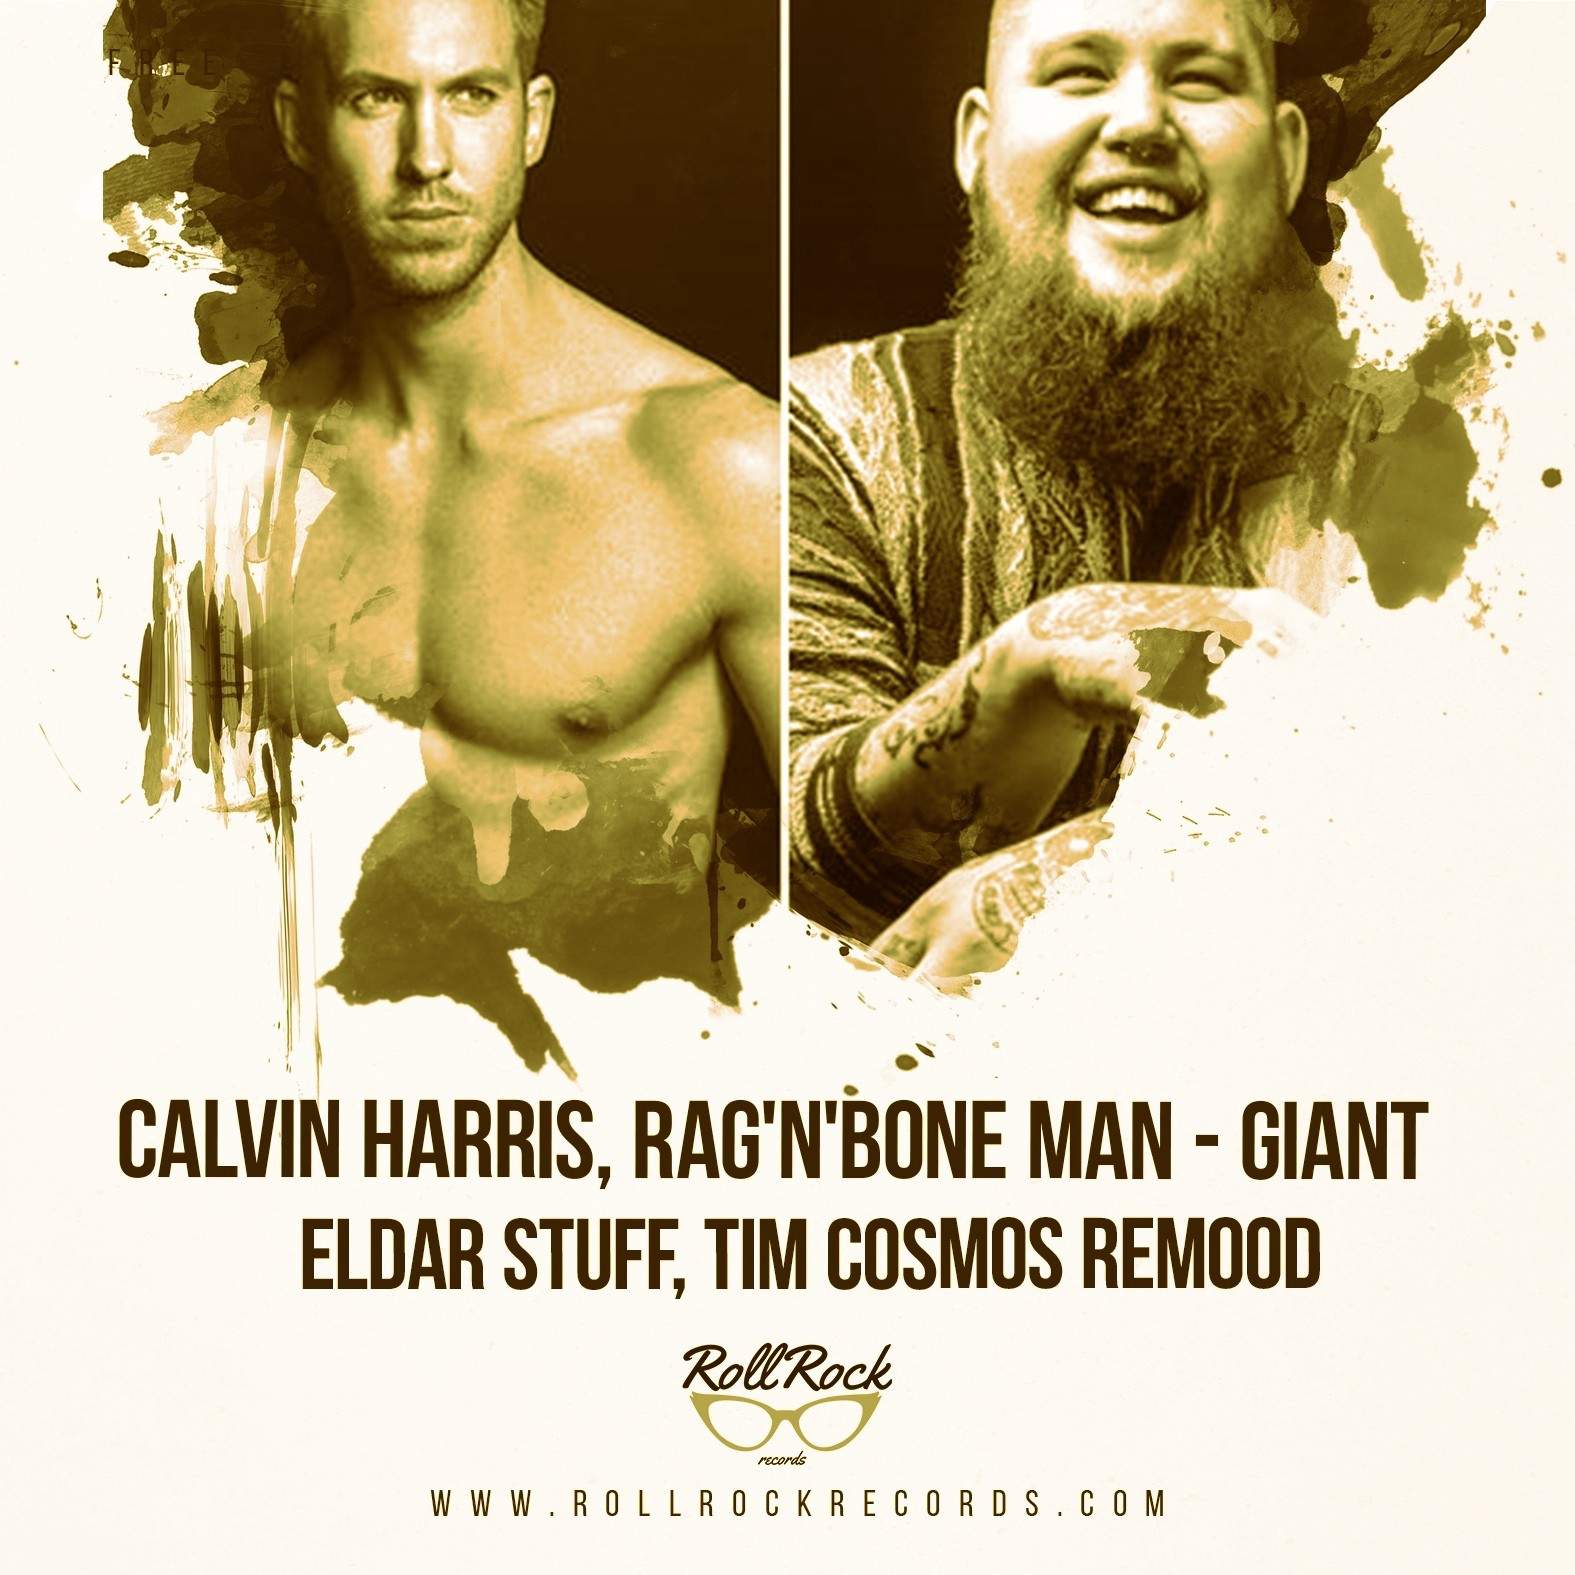 Calvin Harris, Rag'n'Bone Man - Giant (Eldar Stuff, Tim